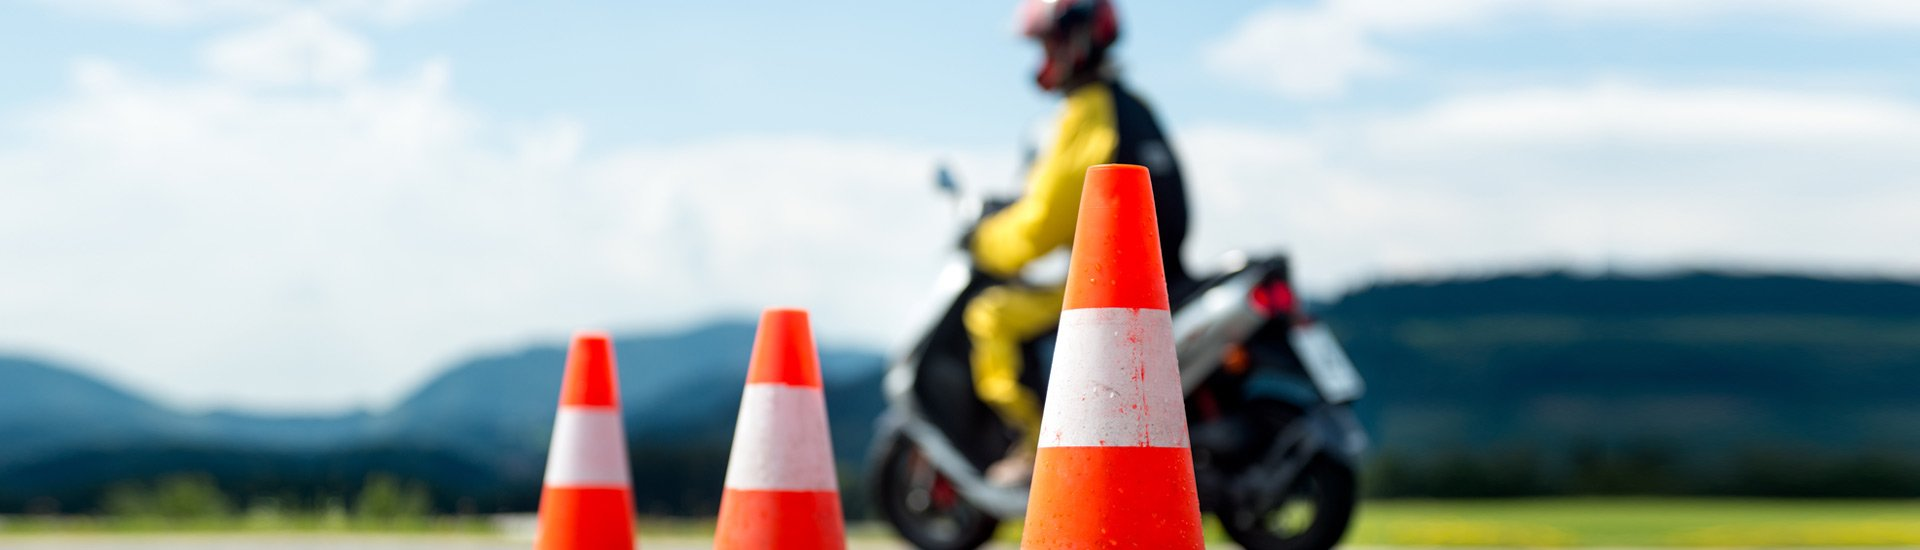 Motorcycle Training Courses